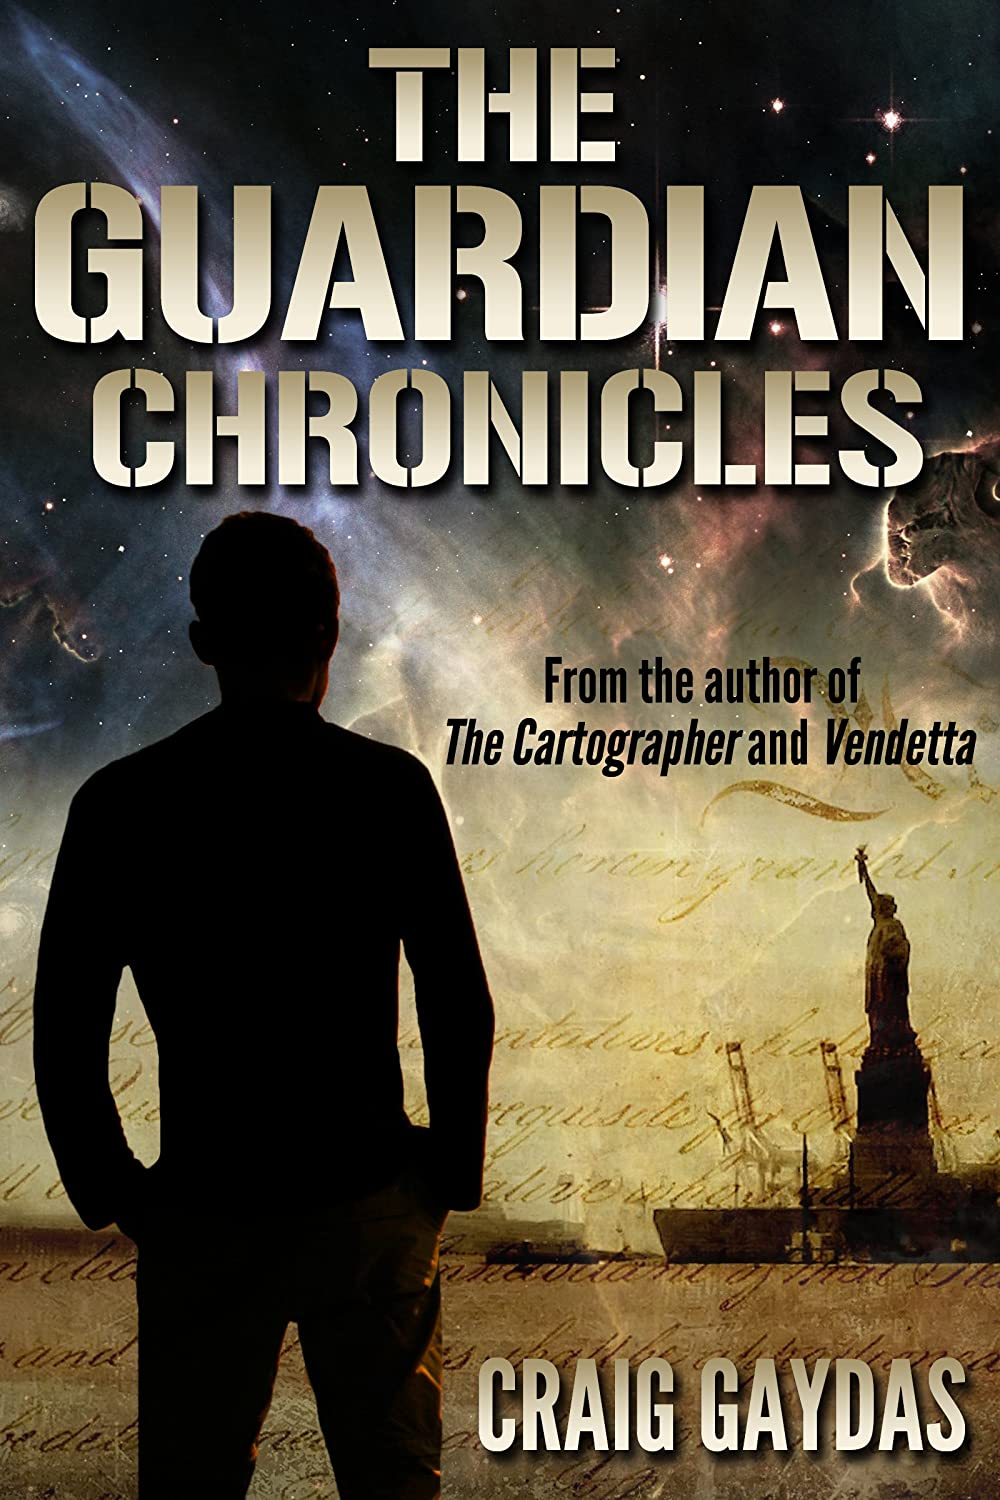 THE-GUARDIAN-CHRONICLES-COMPLETE_500